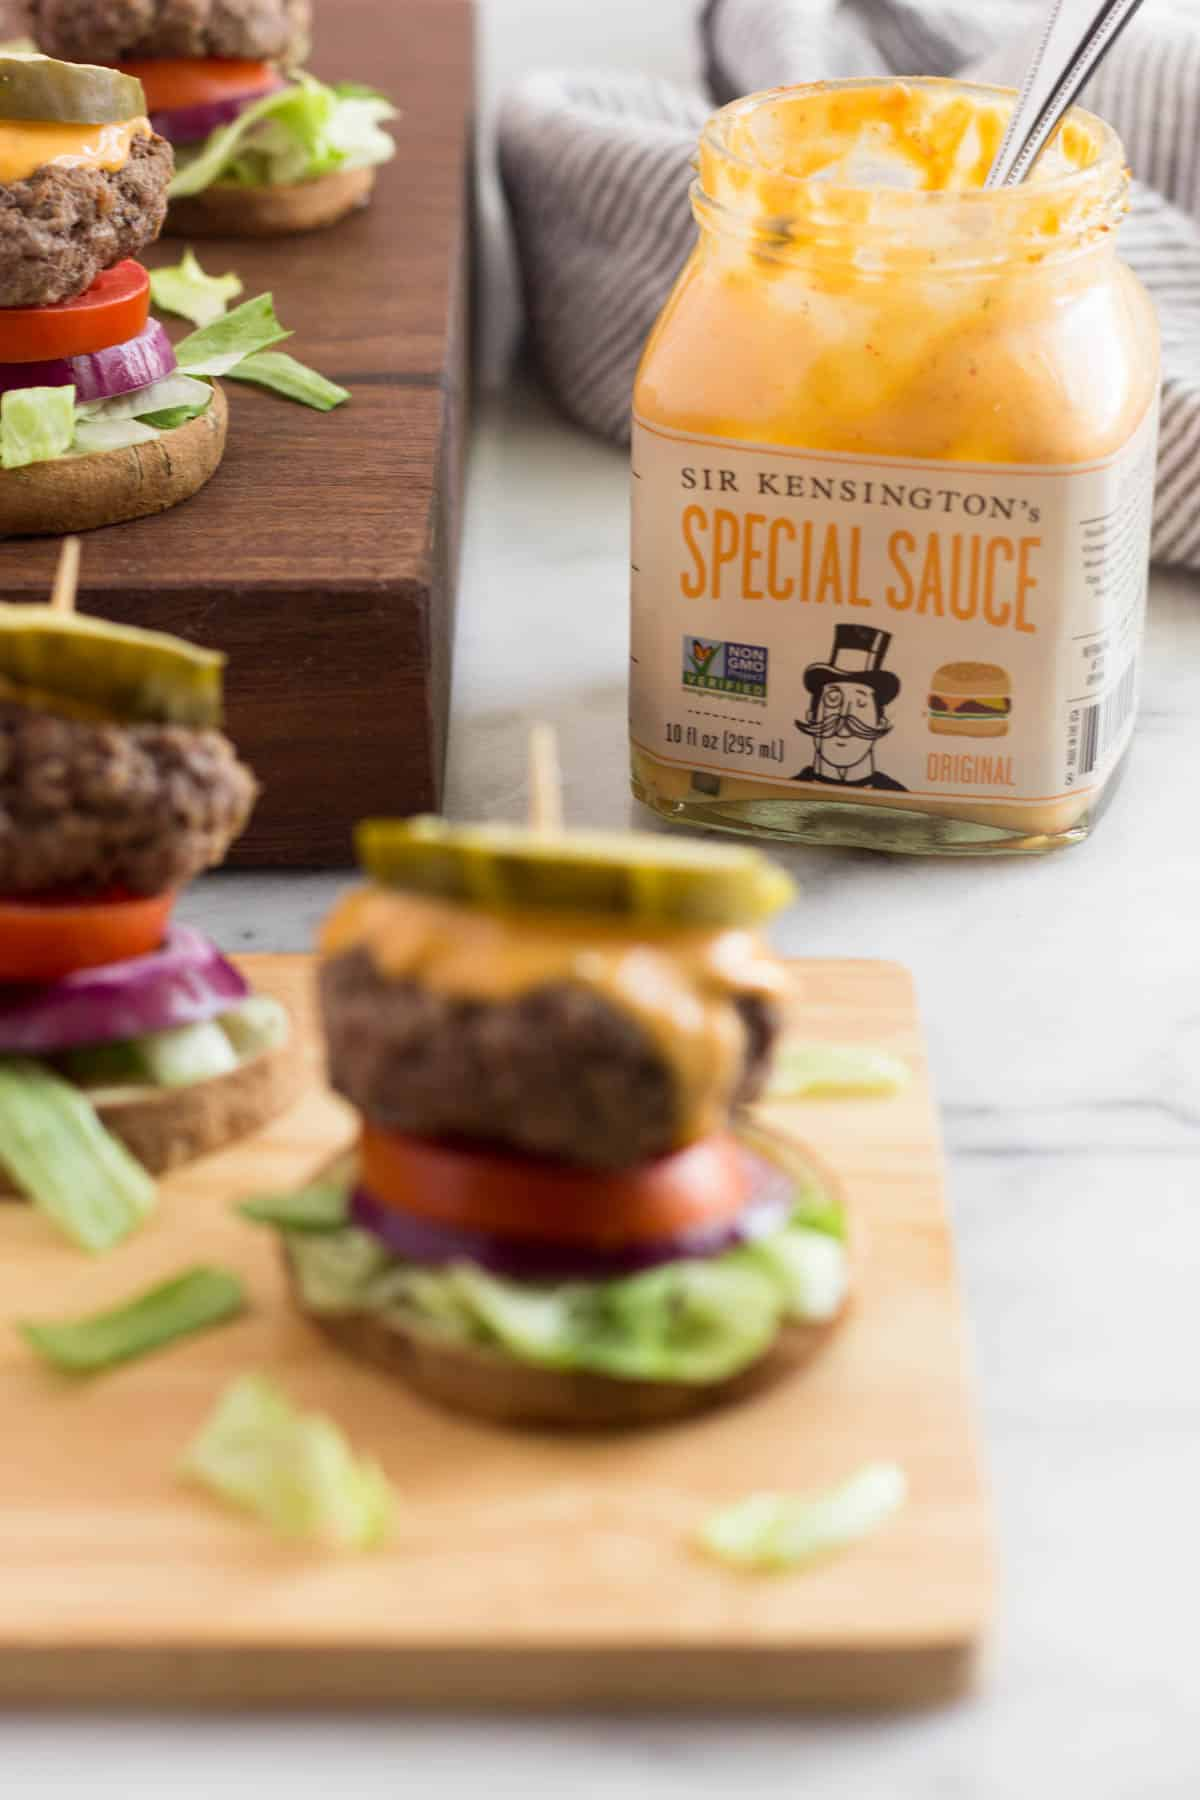 Burger slider on a sweet potato bun that is out of focus with a jar of special sauce that is in focus in the background